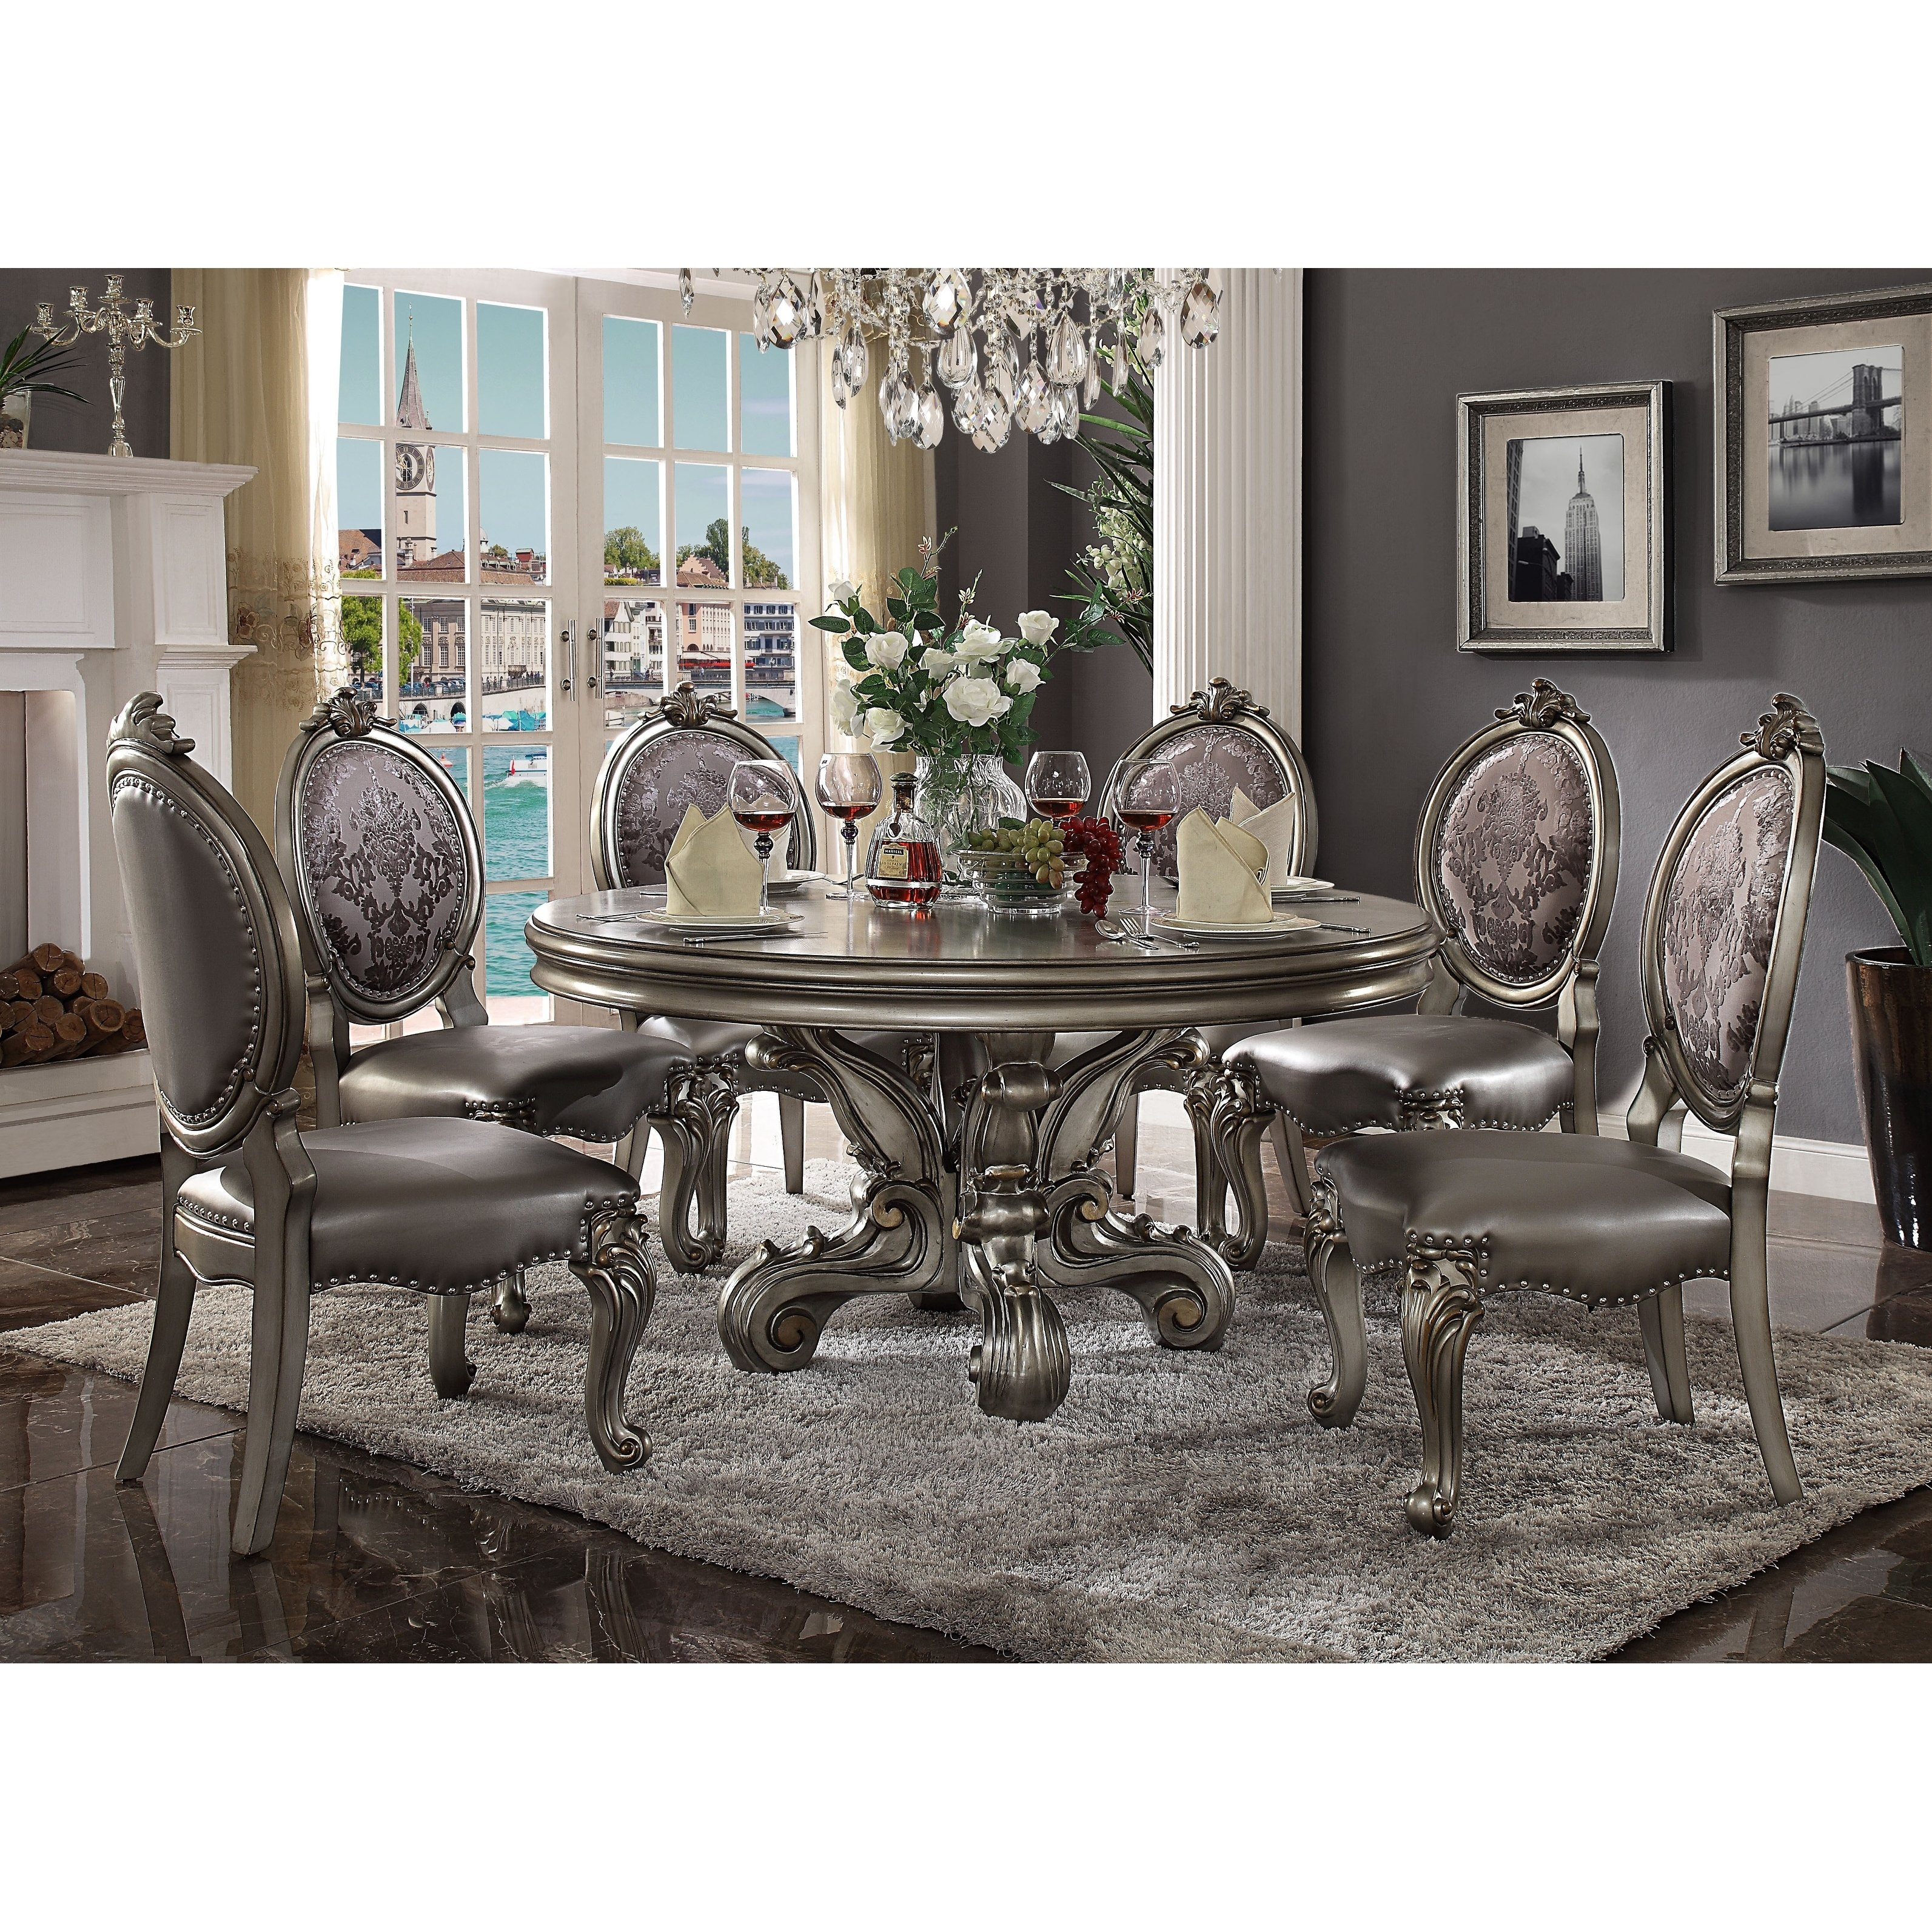 acme versailles dining table round pedestal antique platinum accent free shipping today ceramic lamp low marble coffee mirrored pier one chairs target sofa tables furniture